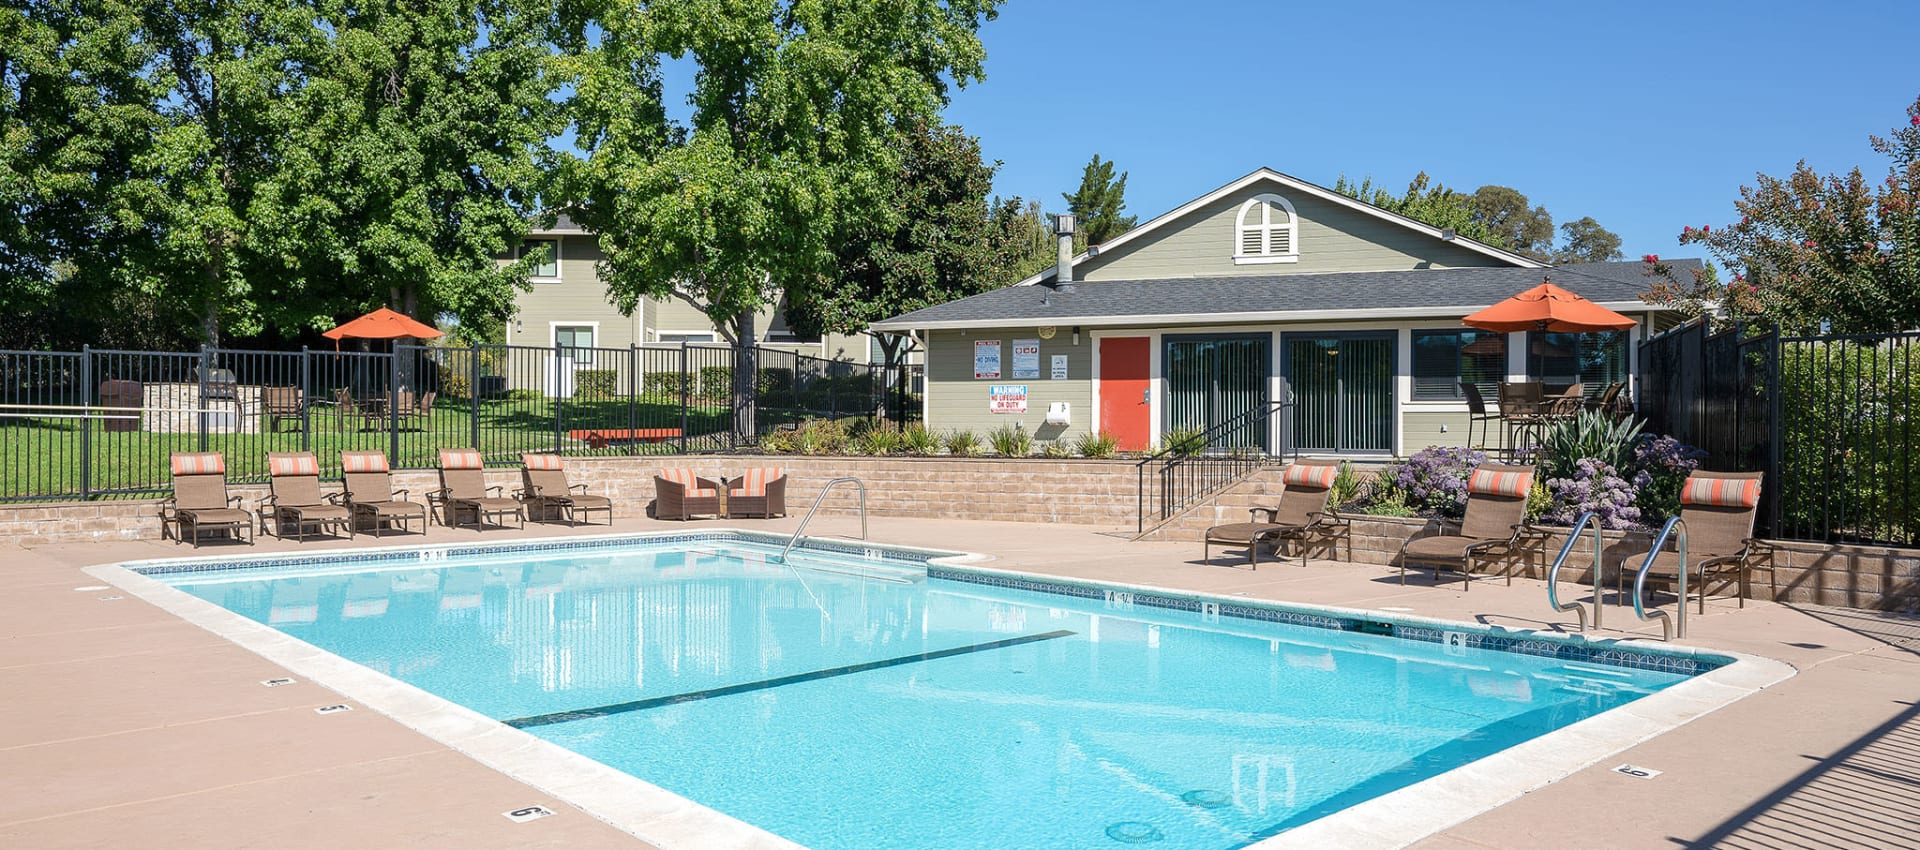 Swimming pool at Ridgecrest Apartment Homes in Martinez, California